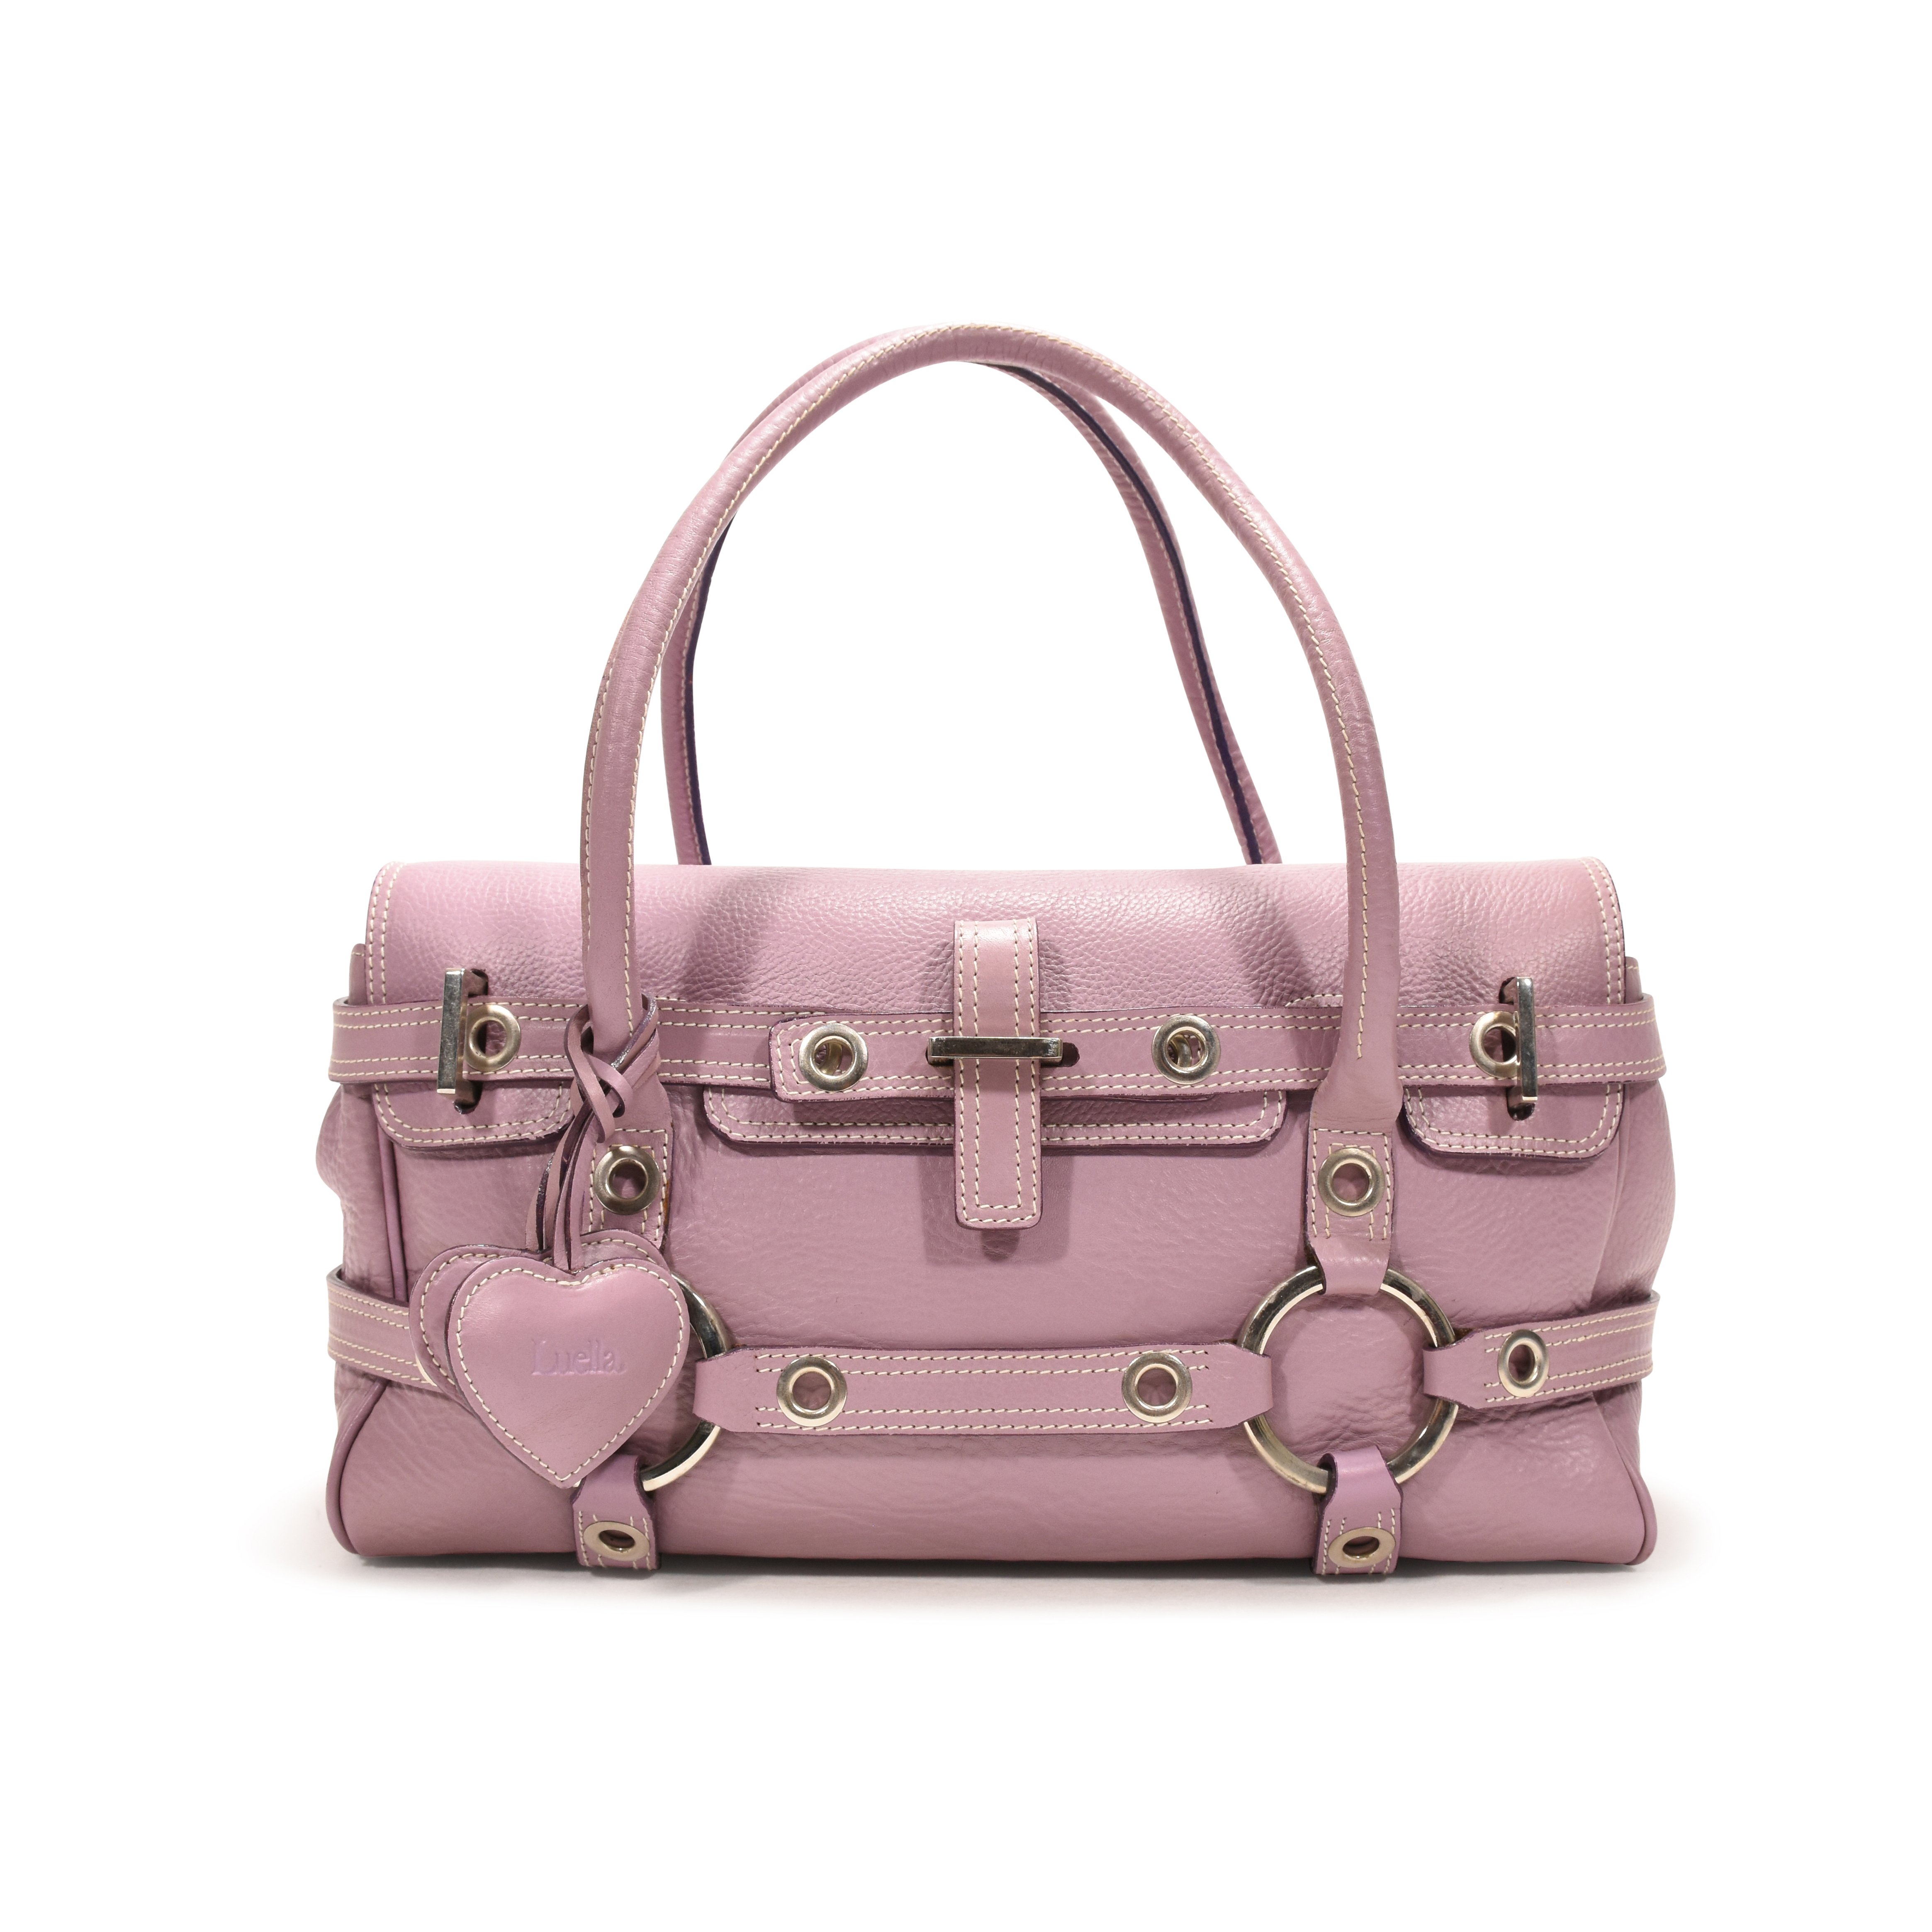 6043fb6b9e Authentic Second Hand Luella Gisele Bag (PSS-369-00021) - THE FIFTH  COLLECTION